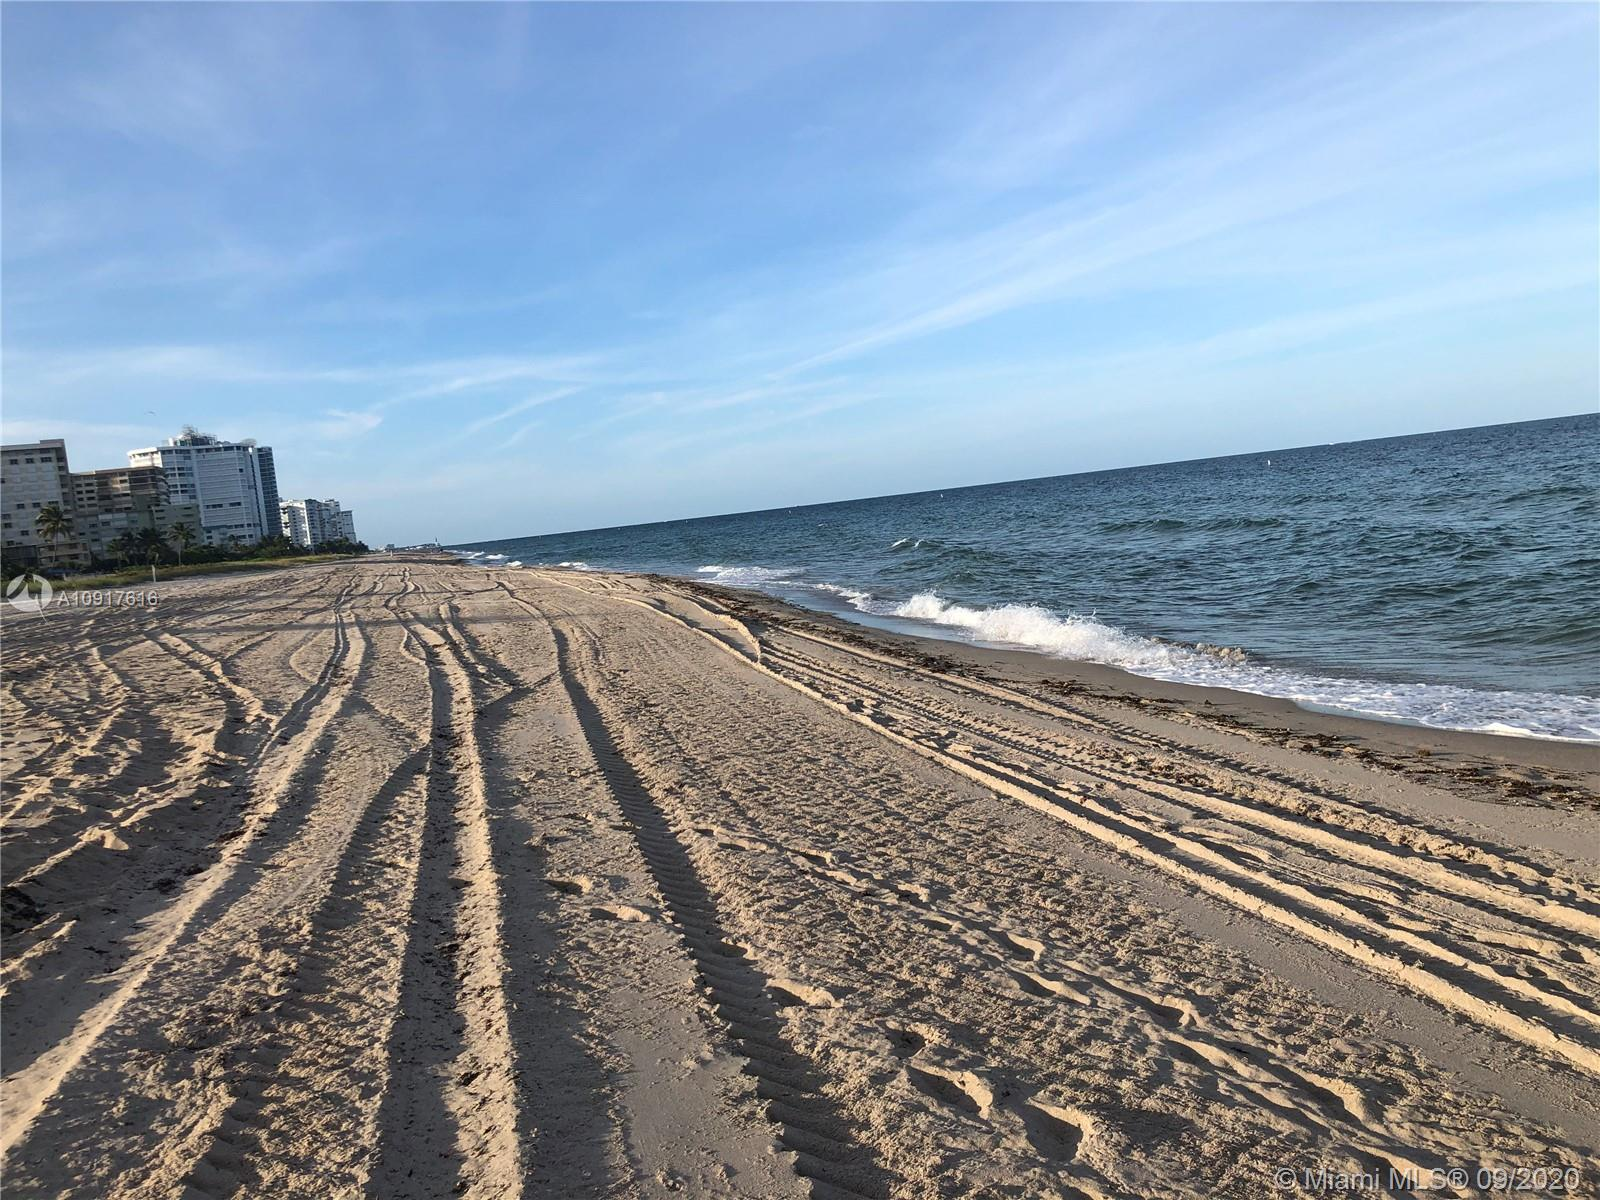 BEAUTIFULLY RENOVATED UNIT. SPACIOUS, BRIGHT OPEN LAYOUT, WALK TO THE BEACH (LESS THAN 300 STEPS FROM DOOR TO OCEAN). WALKING DISTANCE TO THE CENTER OF LAUD BY THE SEA DOWNTOWN, BEACH, SHOPS AND GROCERY STORES. RELAXED ATMOSPHERE. SEASONAL RENTAL (OCTOBER, NOVEMBER, DECEMBER AND JANUARY AVAILABLE) MINIMUM 2 MONTHS. OFF-SEASON RENTAL (MAY, JUNE, JULY, AUGUST, SEPTEMBER AVAILABLE) CONTACT AGENT FOR YEARLY OR OFF-SEASON RENTAL PRICE. NO TENANT SUBLEASING ALLOWED.